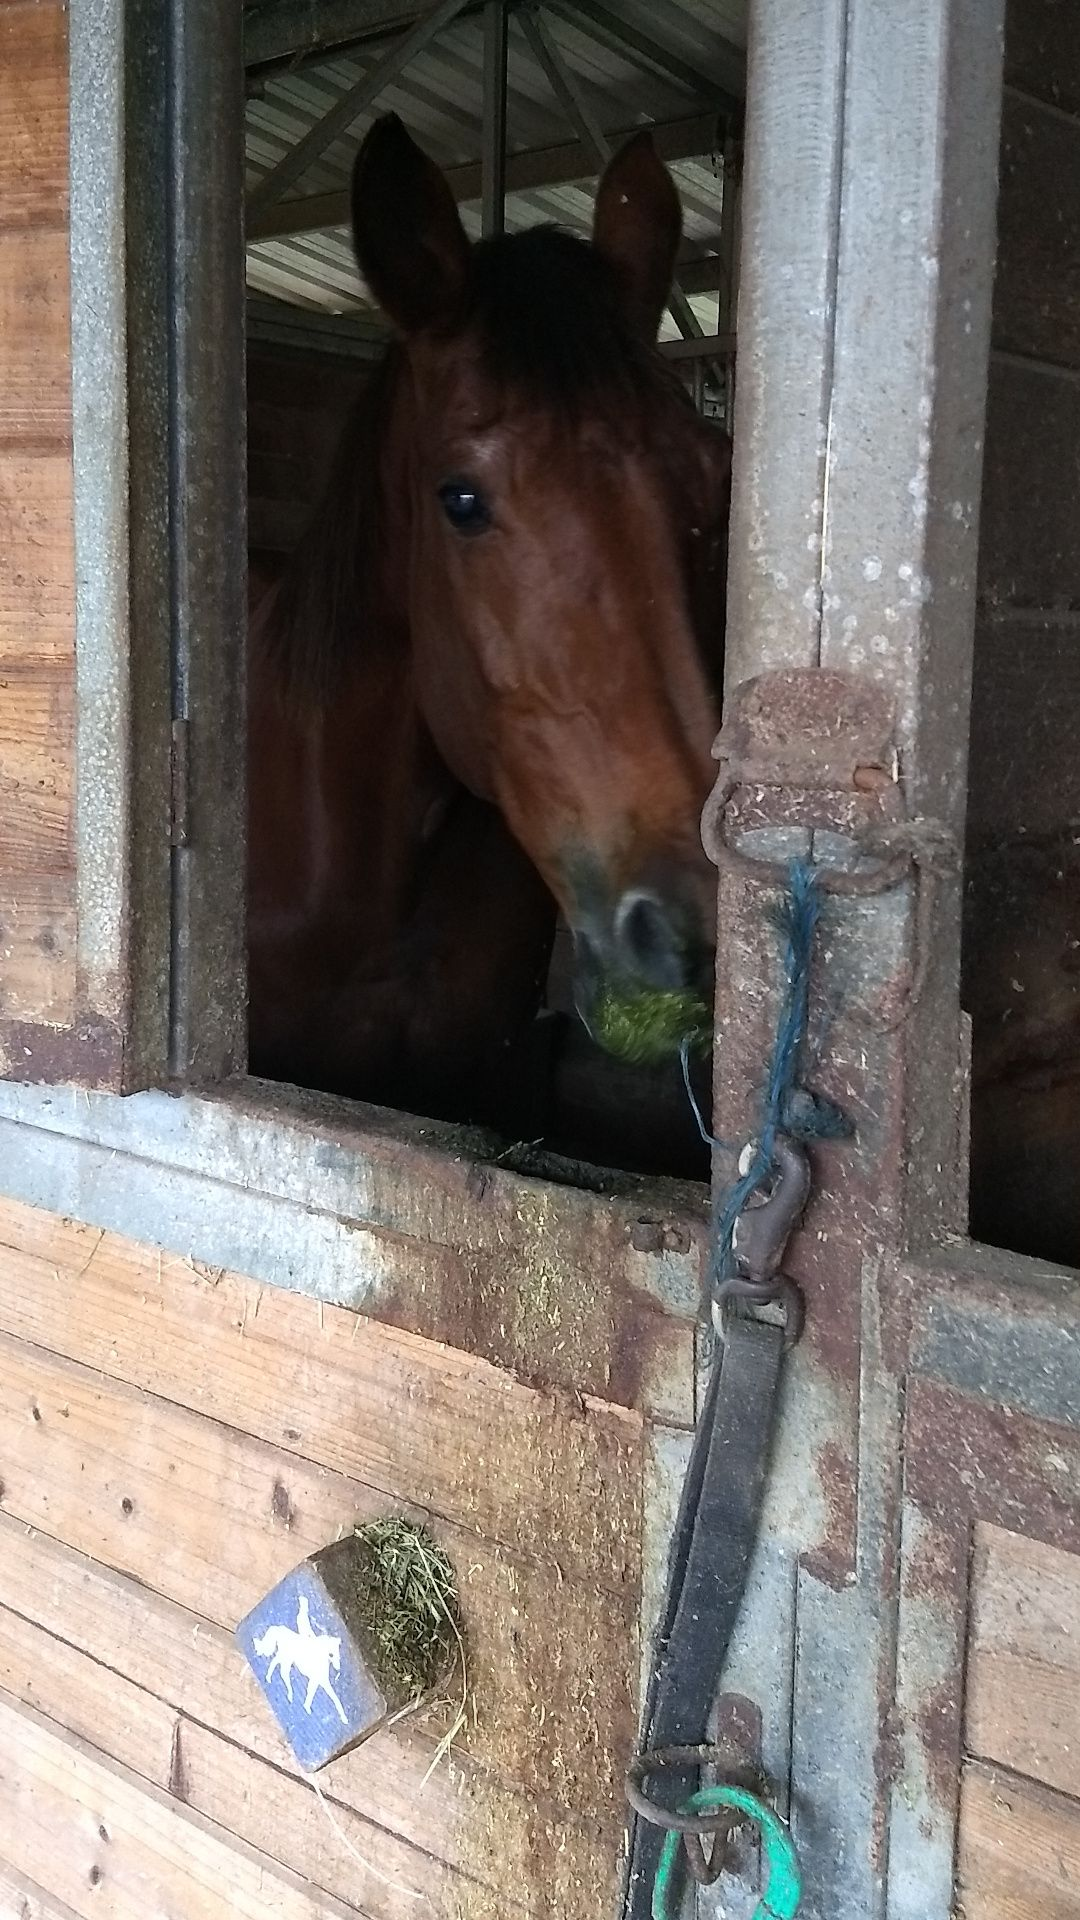 A brown horse inside a stall. The outside of her stall has streaks of alfalfa running down it.